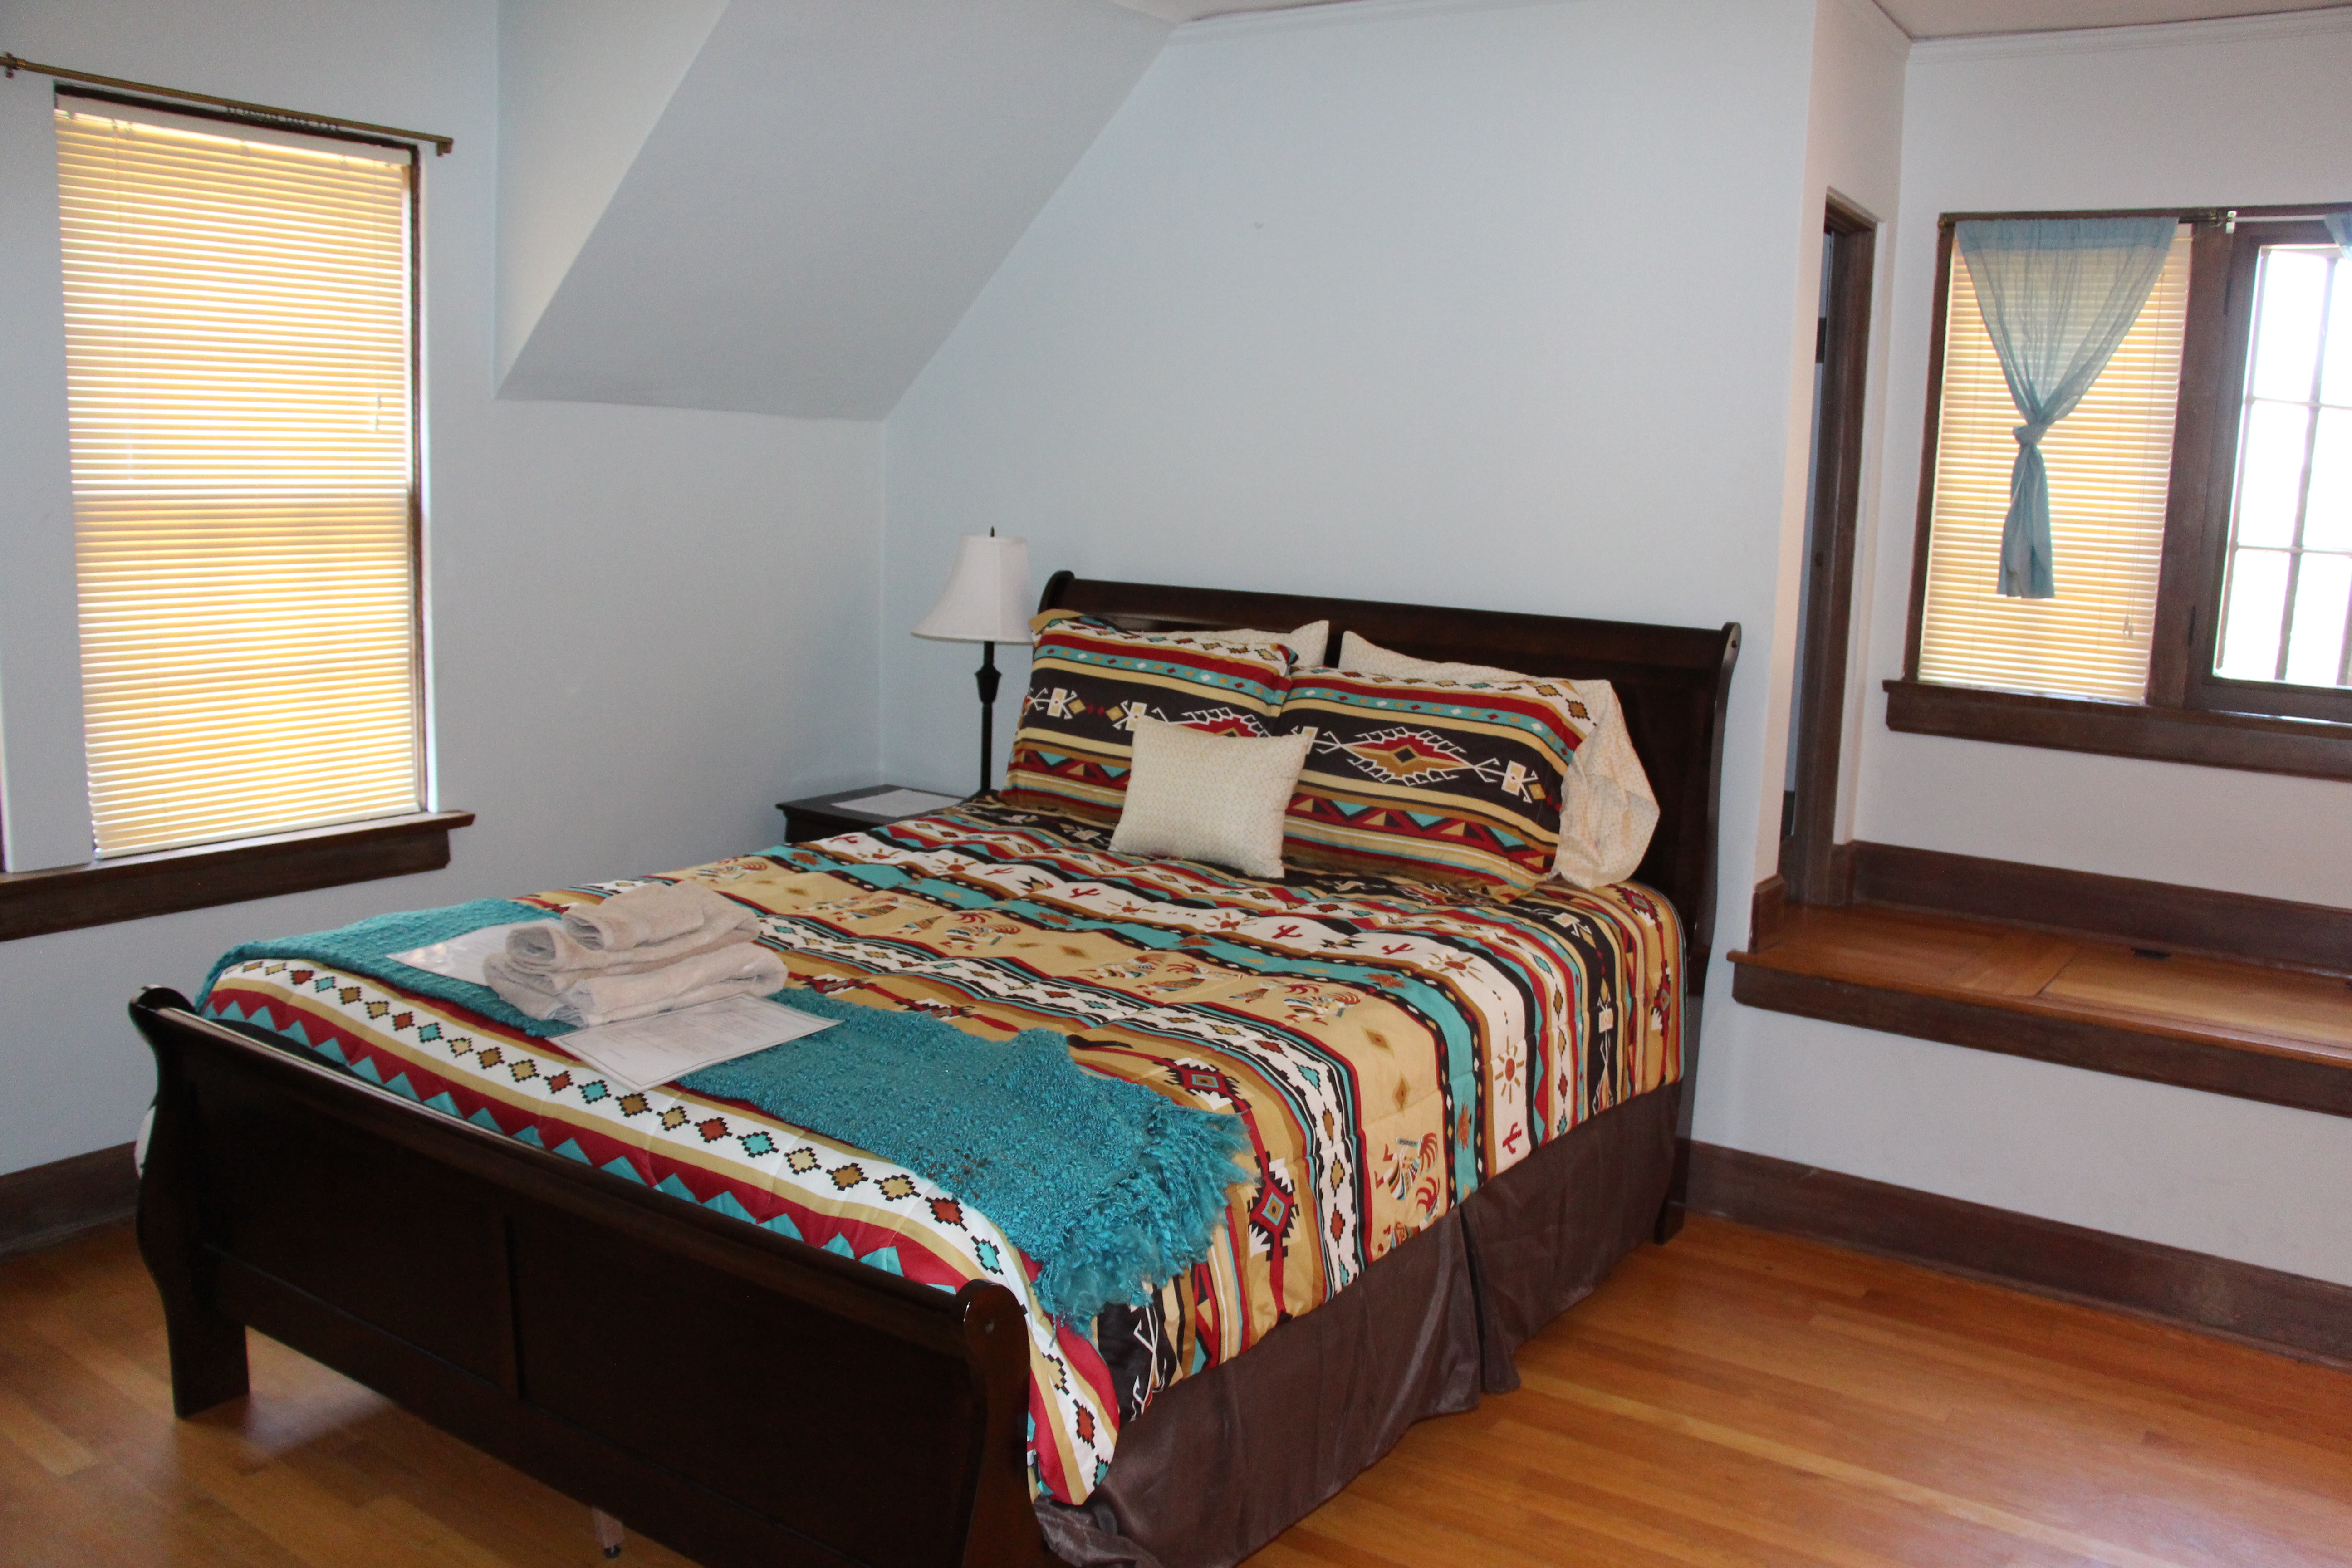 Right Bedroom in Native American Cultural House